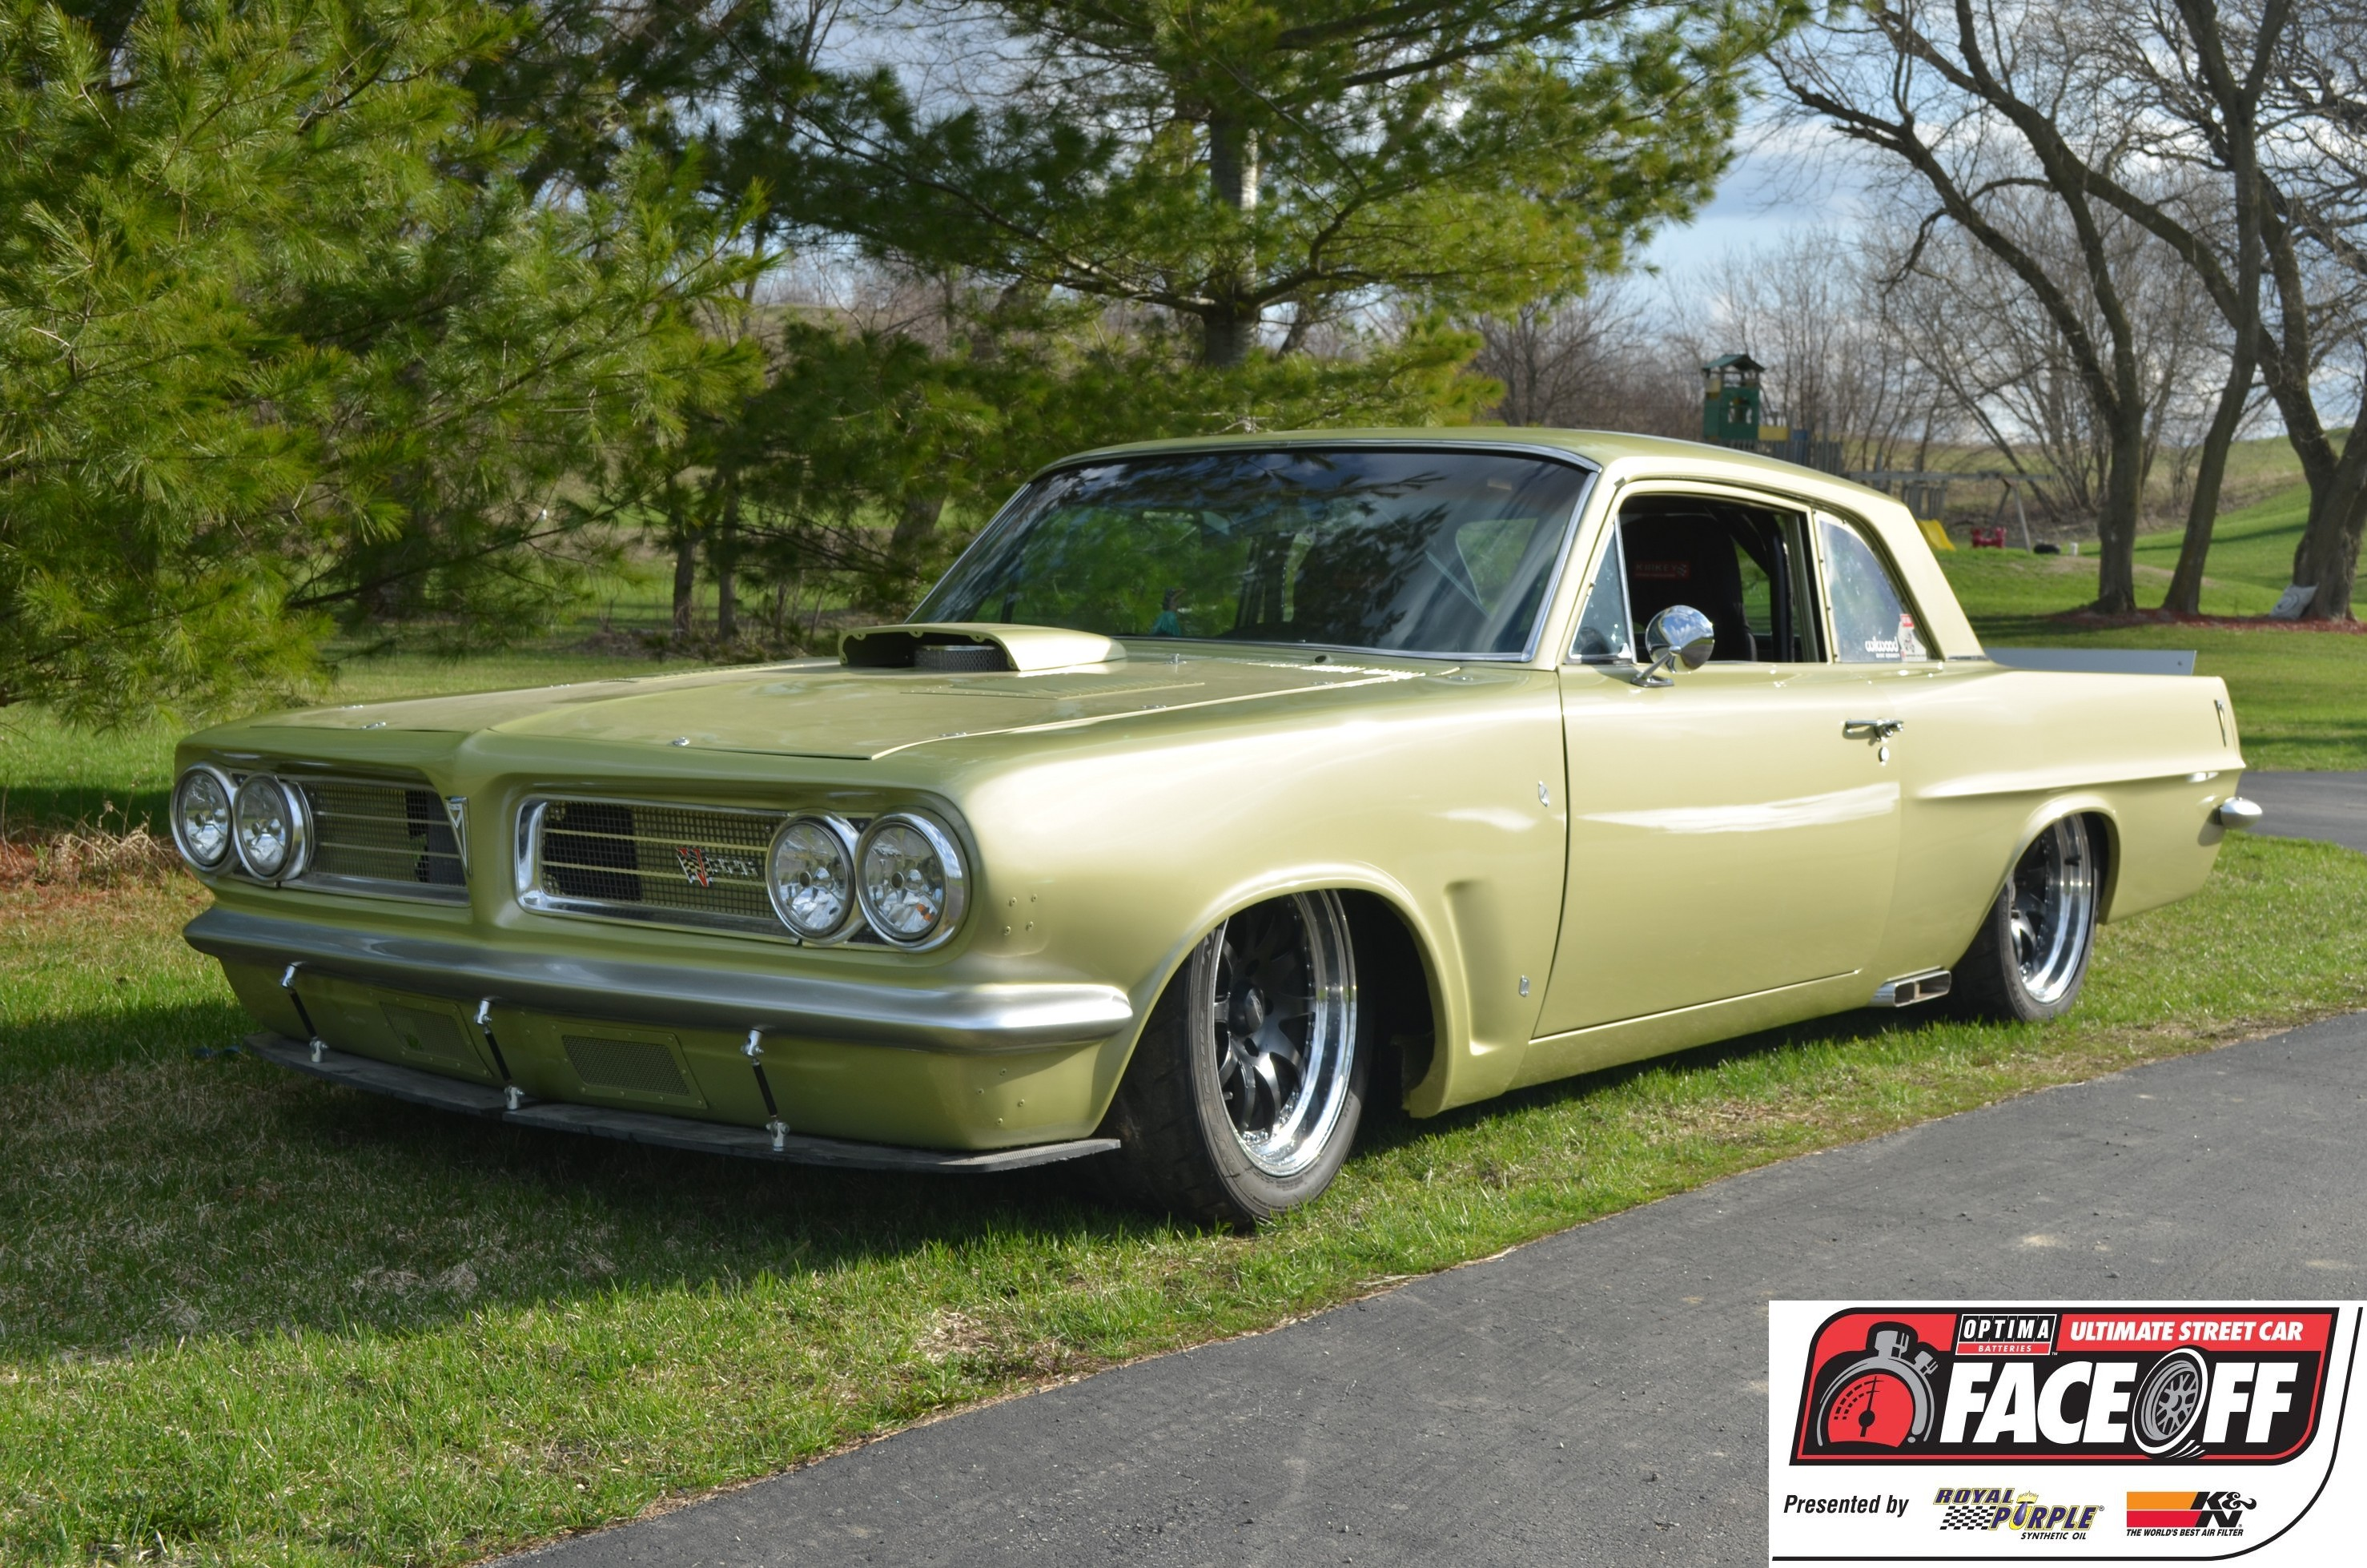 OPTIMA® Faceoff Preview- Damion Campbell's 1963 Pontiac LeMans